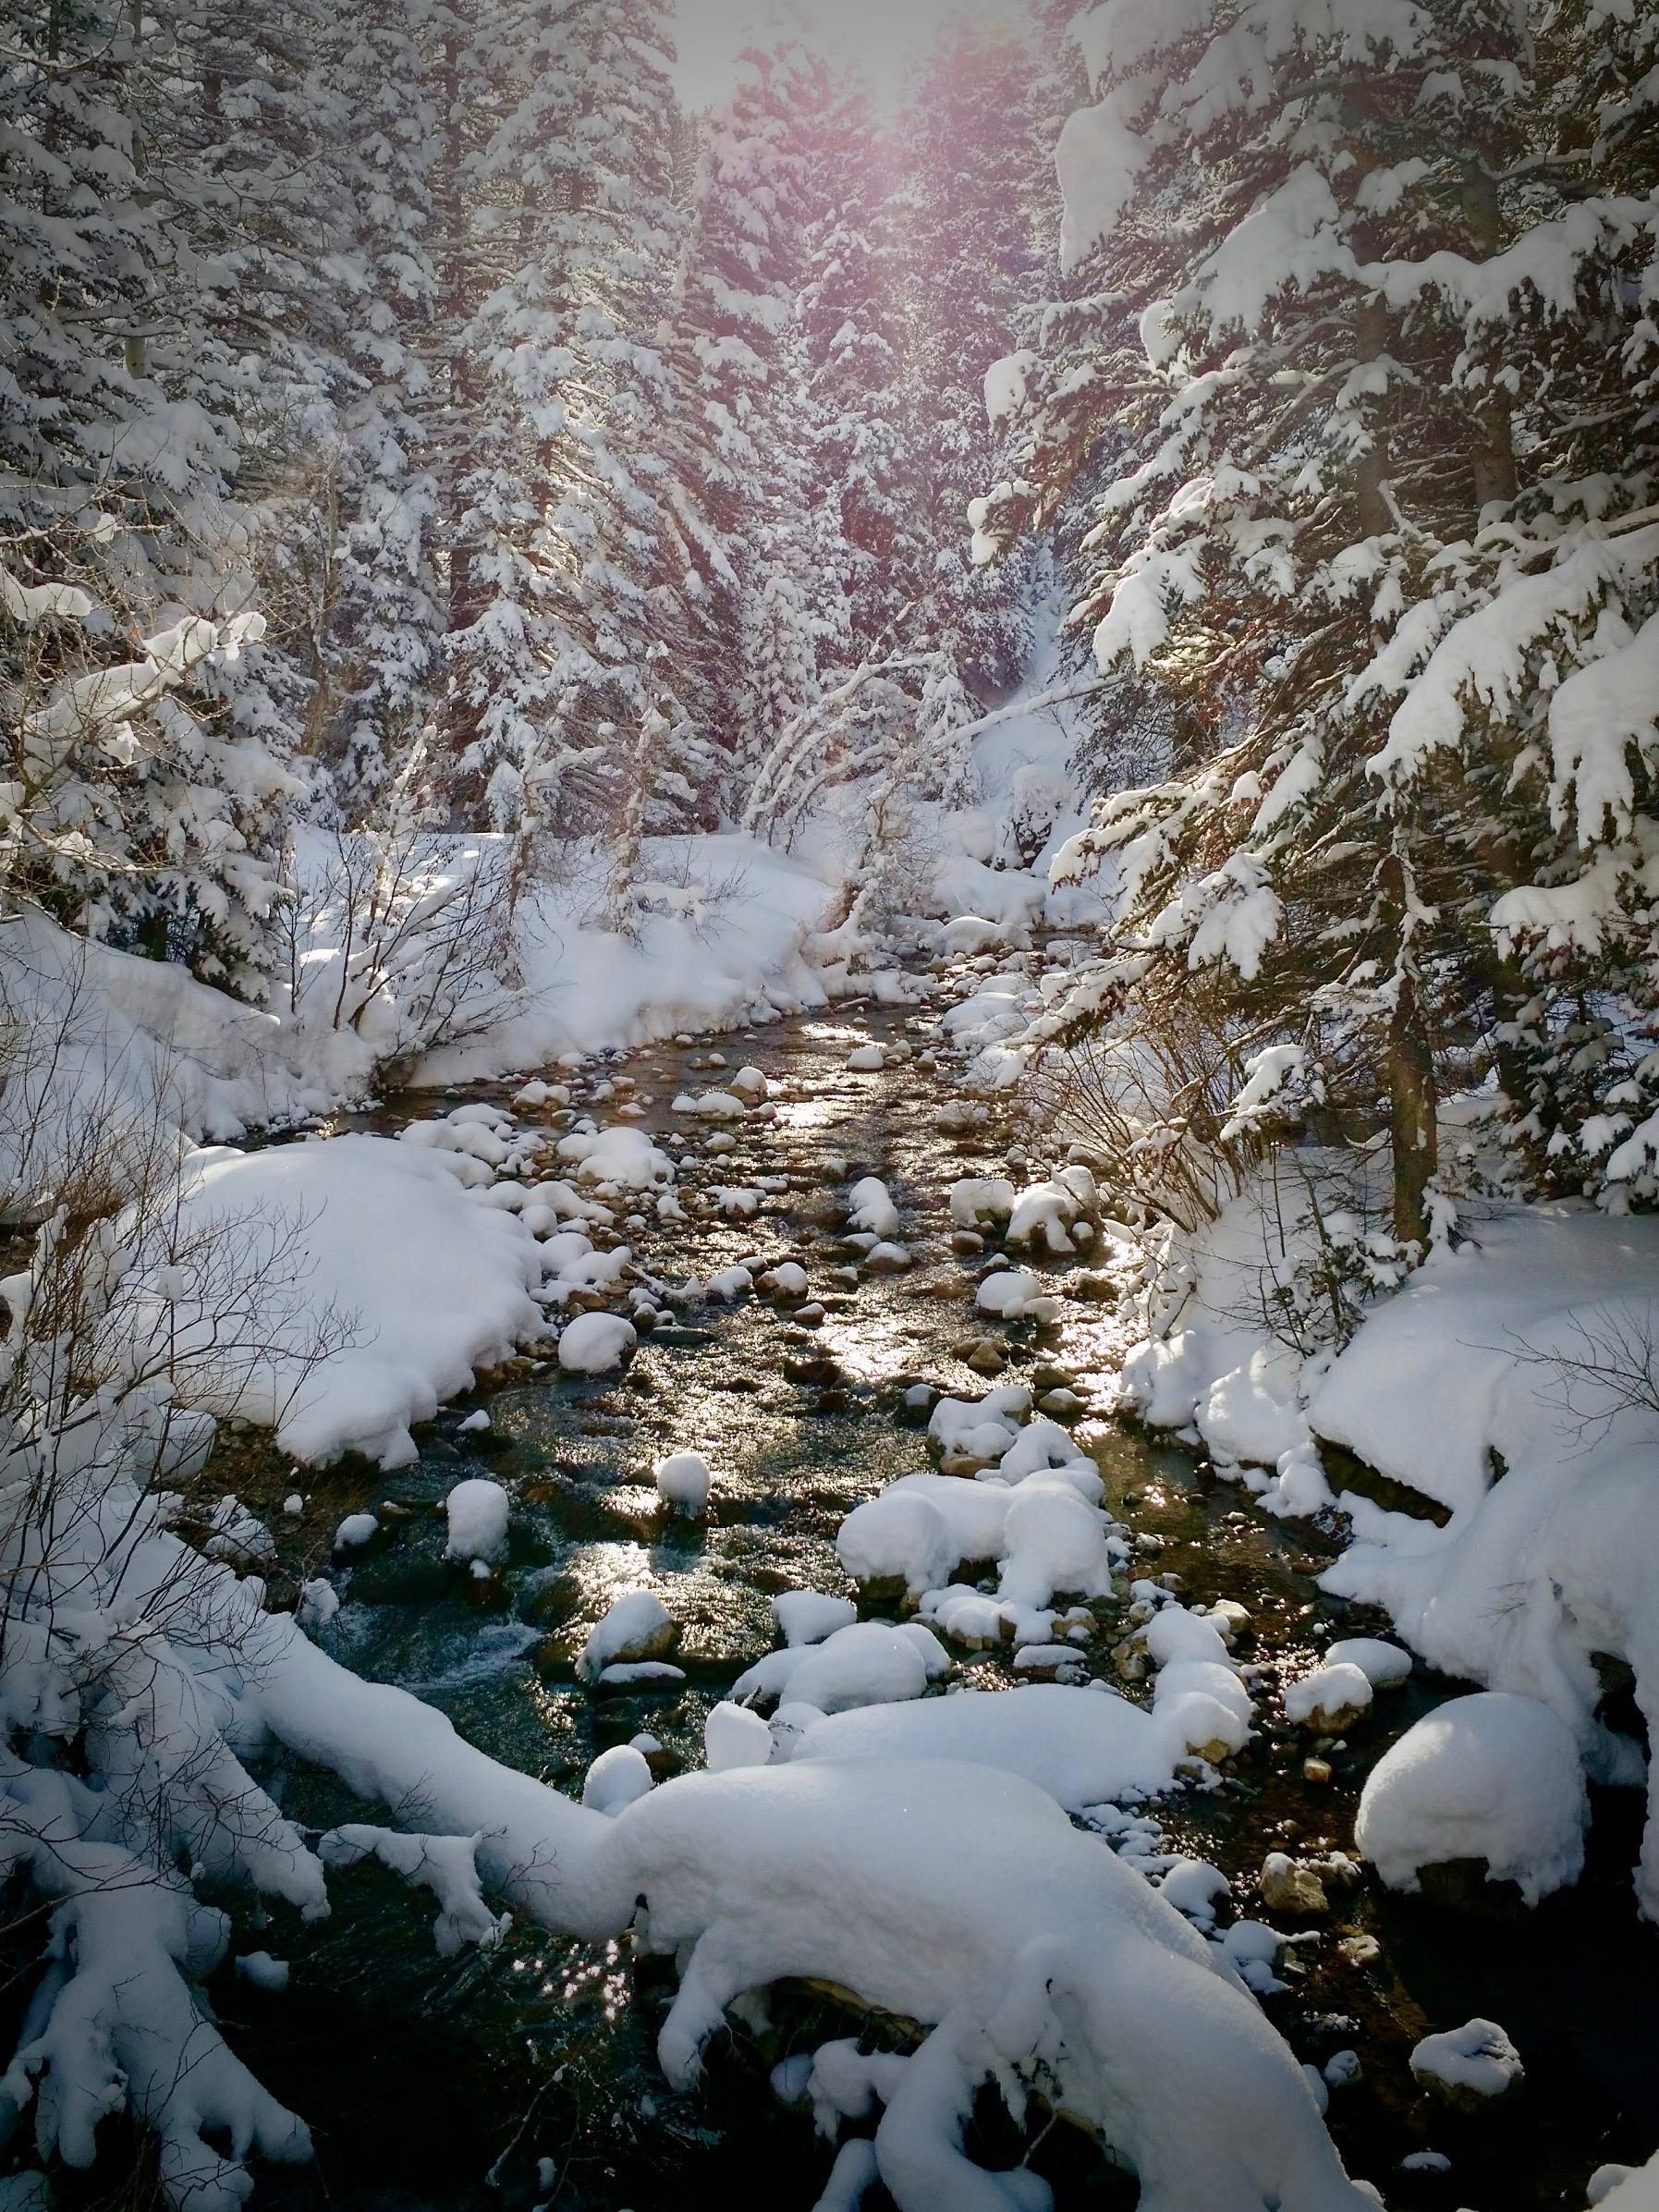 Little Cottonwood Creek At The White Pine Trail Head Above Salt Lake City Off To Another Day Of Skiing Utah Powder 1795 2393 Cottonwood Creek Utah Skiing Cottonwood